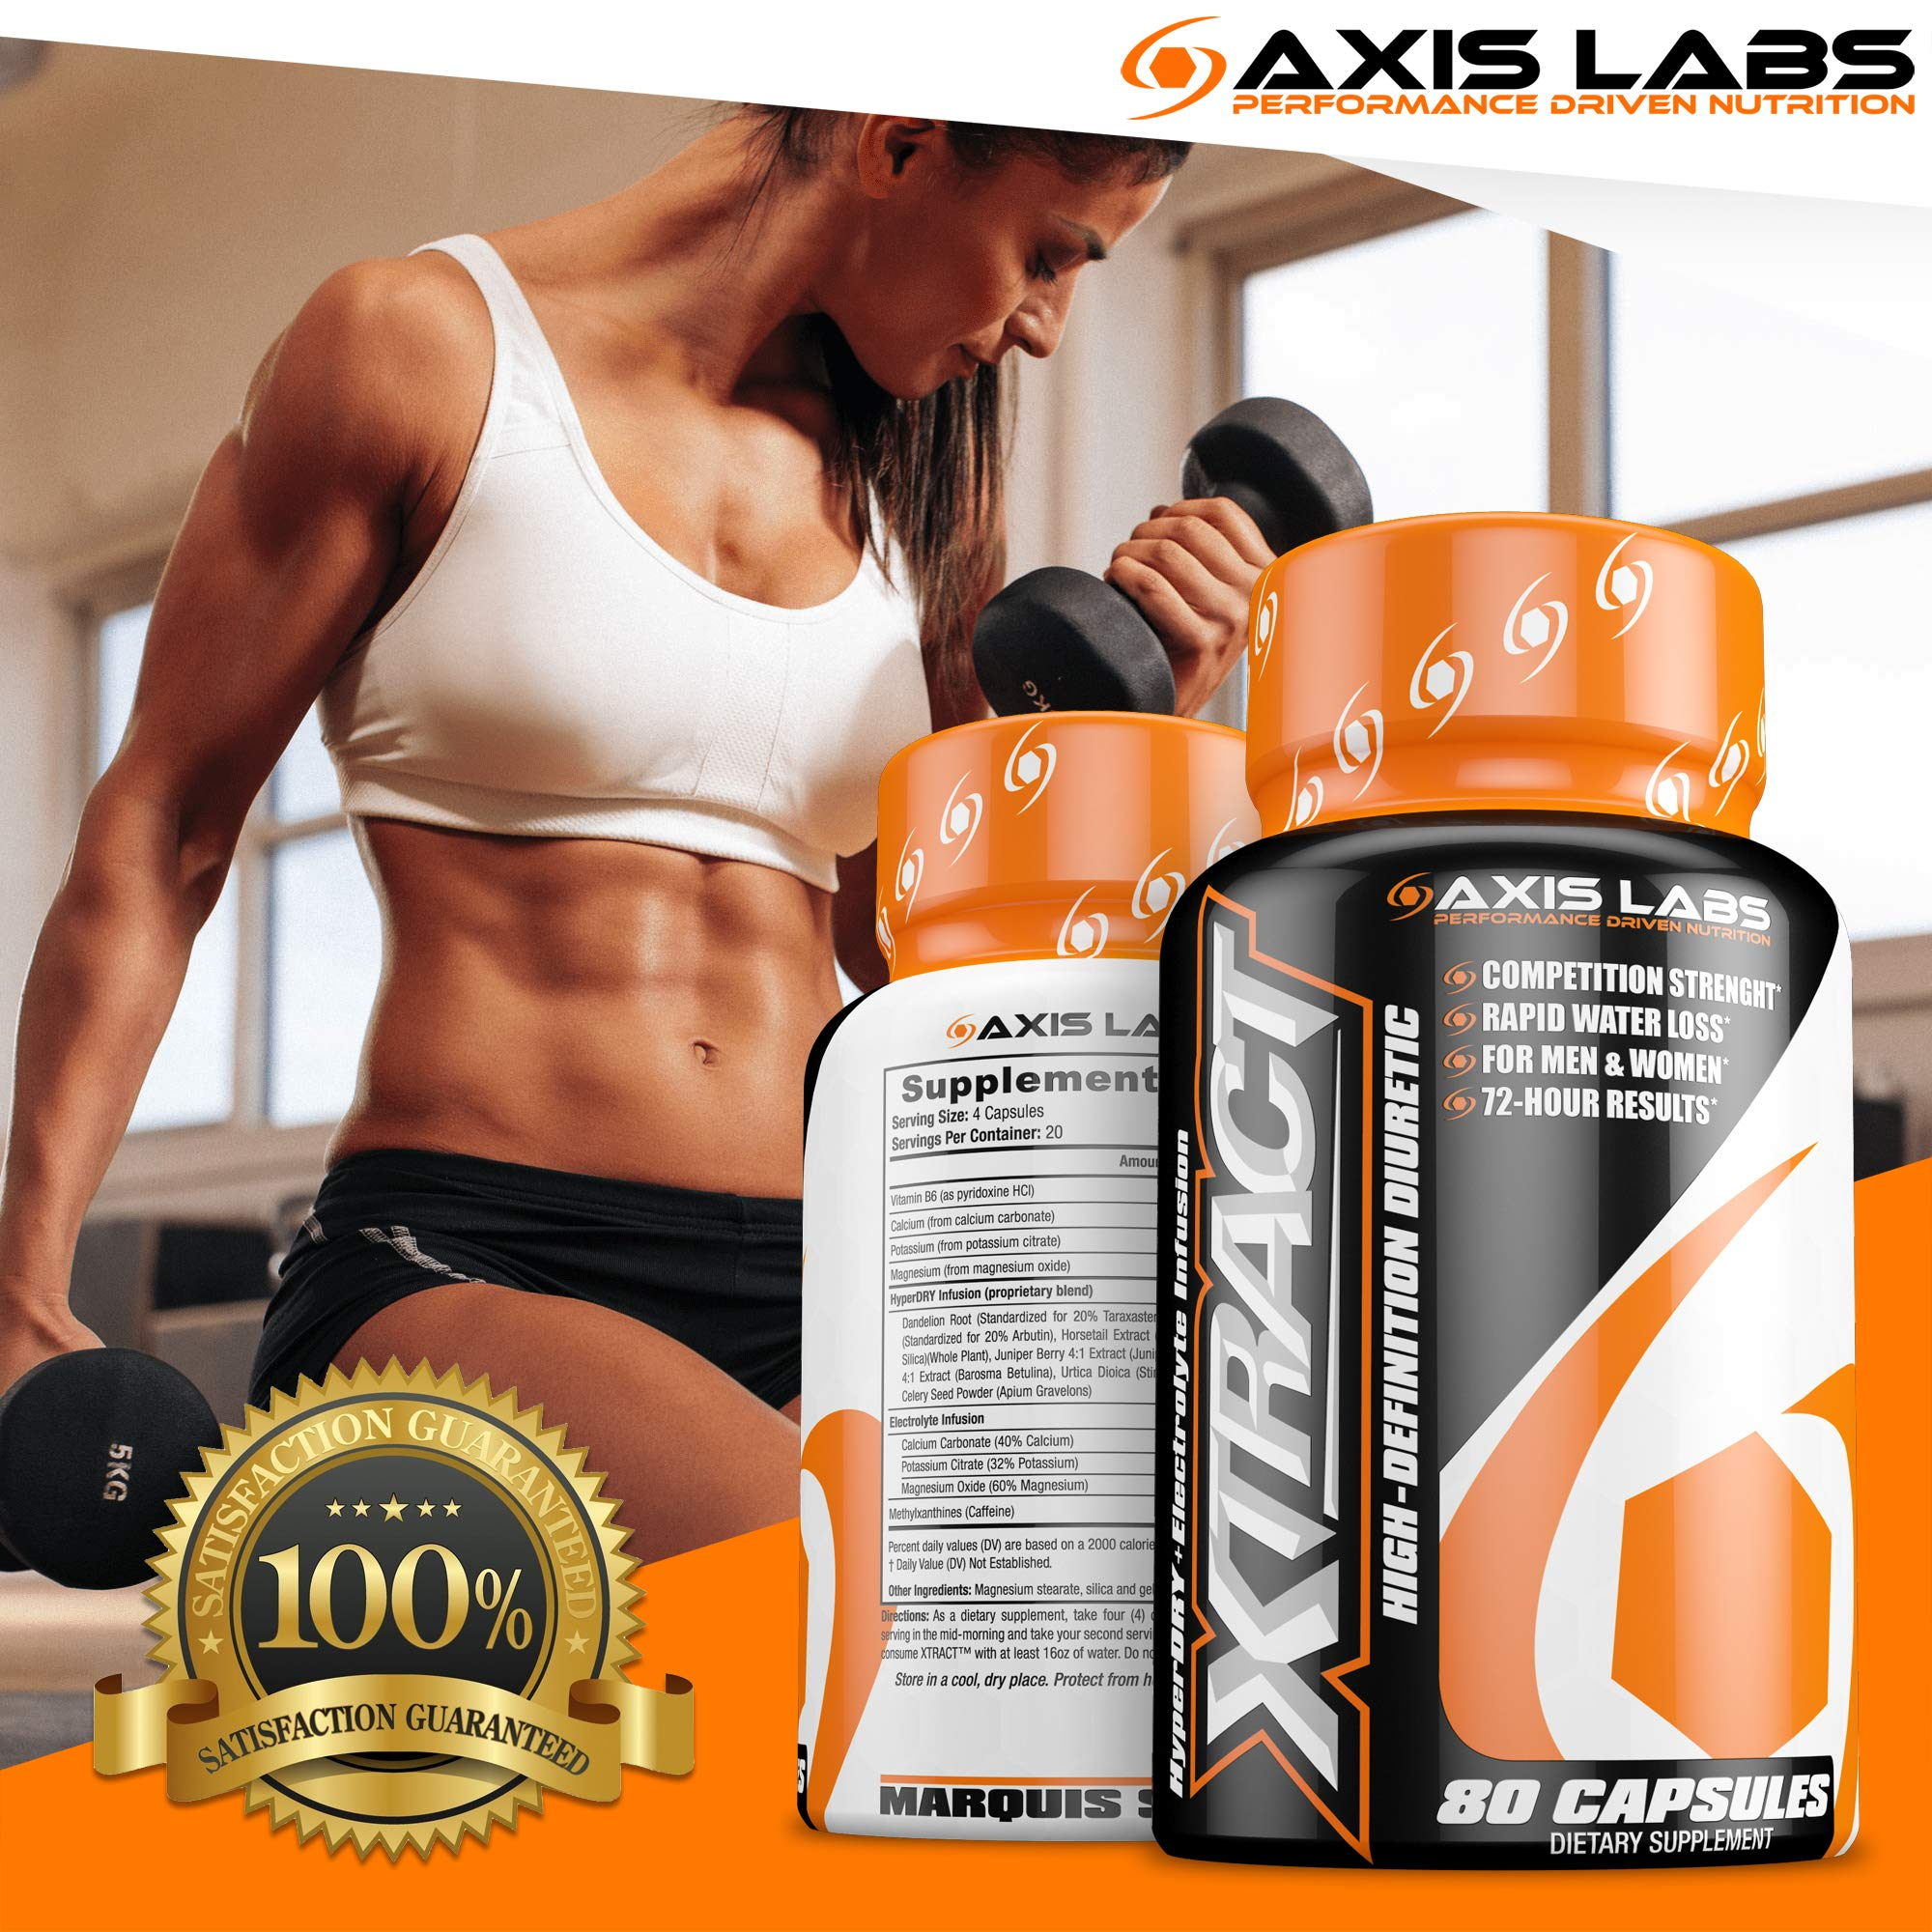 Axis Labs | Xtract High-Definition Diuretic | Rapid Water Loss | Reduce Bloating | Competition Strength for Men and Women | Bodybuilders and Fitness Models | 20 Servings Per Bottle | 80 Capsules by Axis Labs (Image #5)